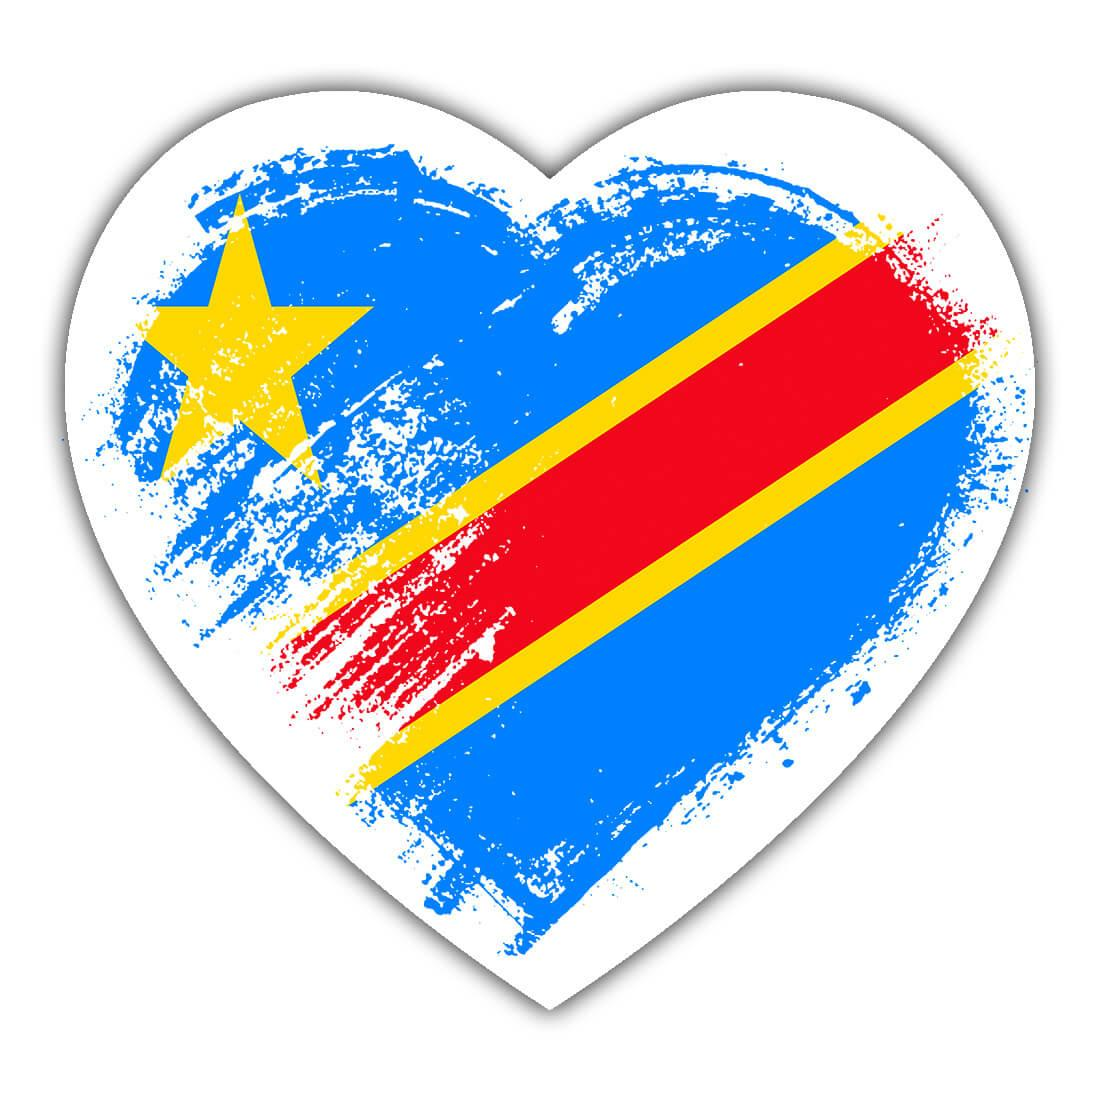 Congolese Heart : Gift Sticker Democratic Republic of the Congo Country Expat Flag